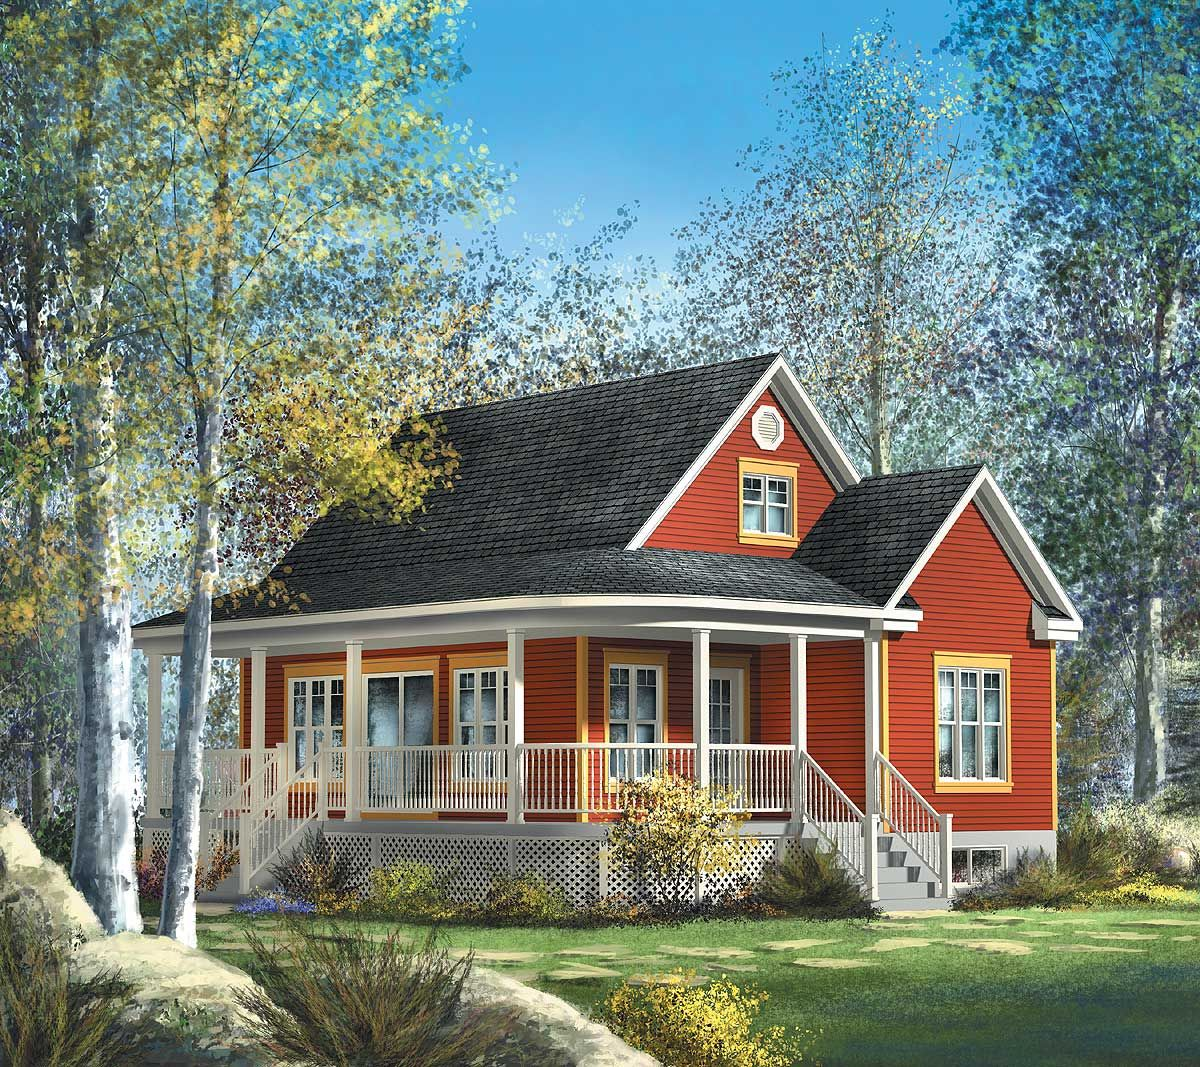 Plan 80559PM: Cute Country Cottage In 2019